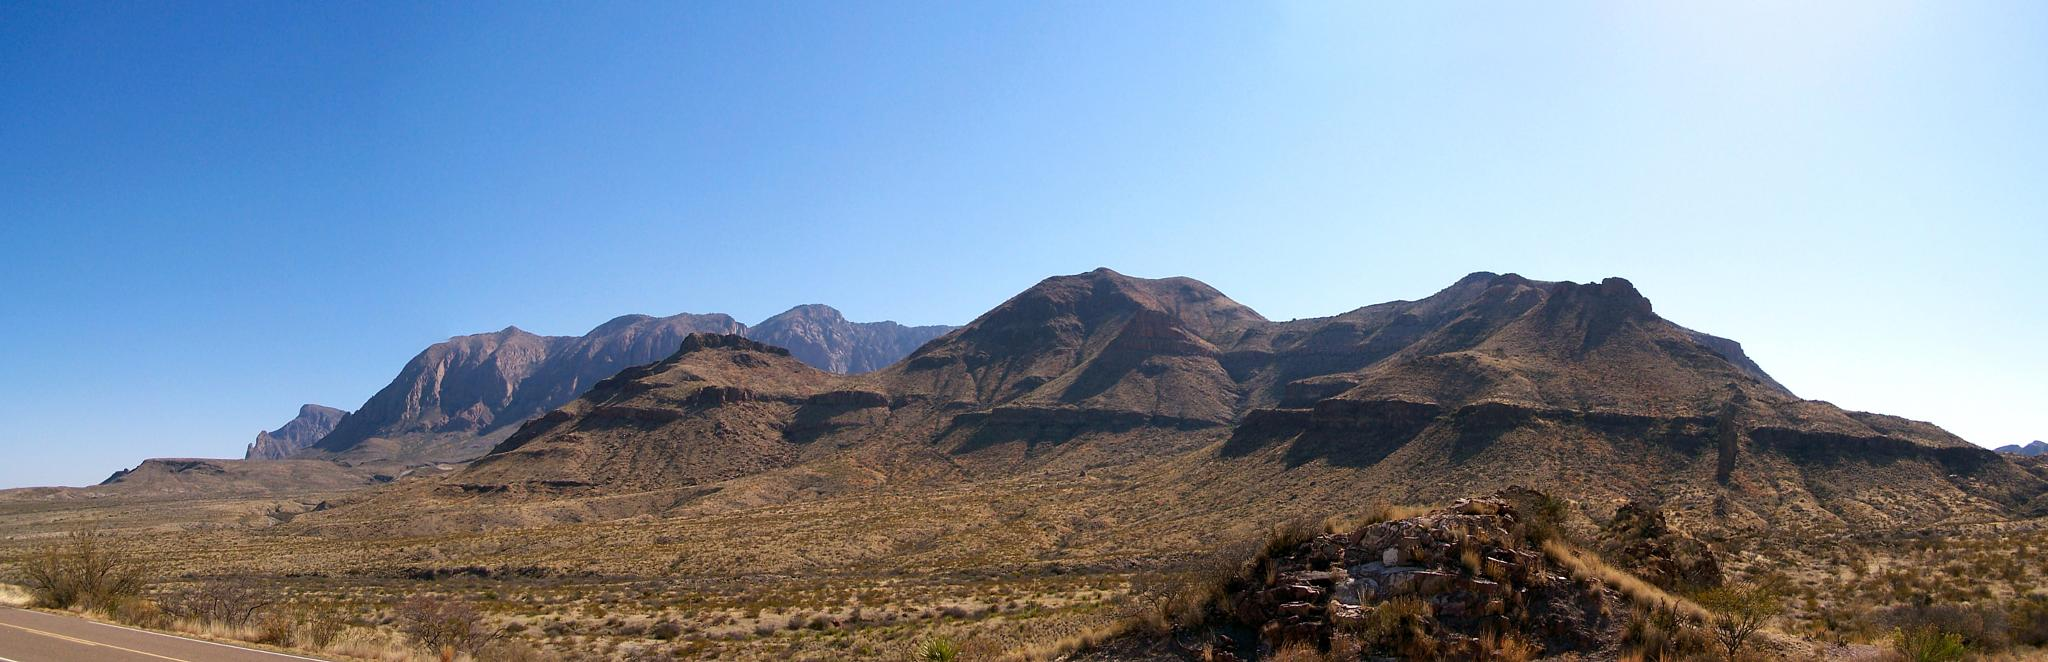 Big Bend National Park, Texas by Ozroo